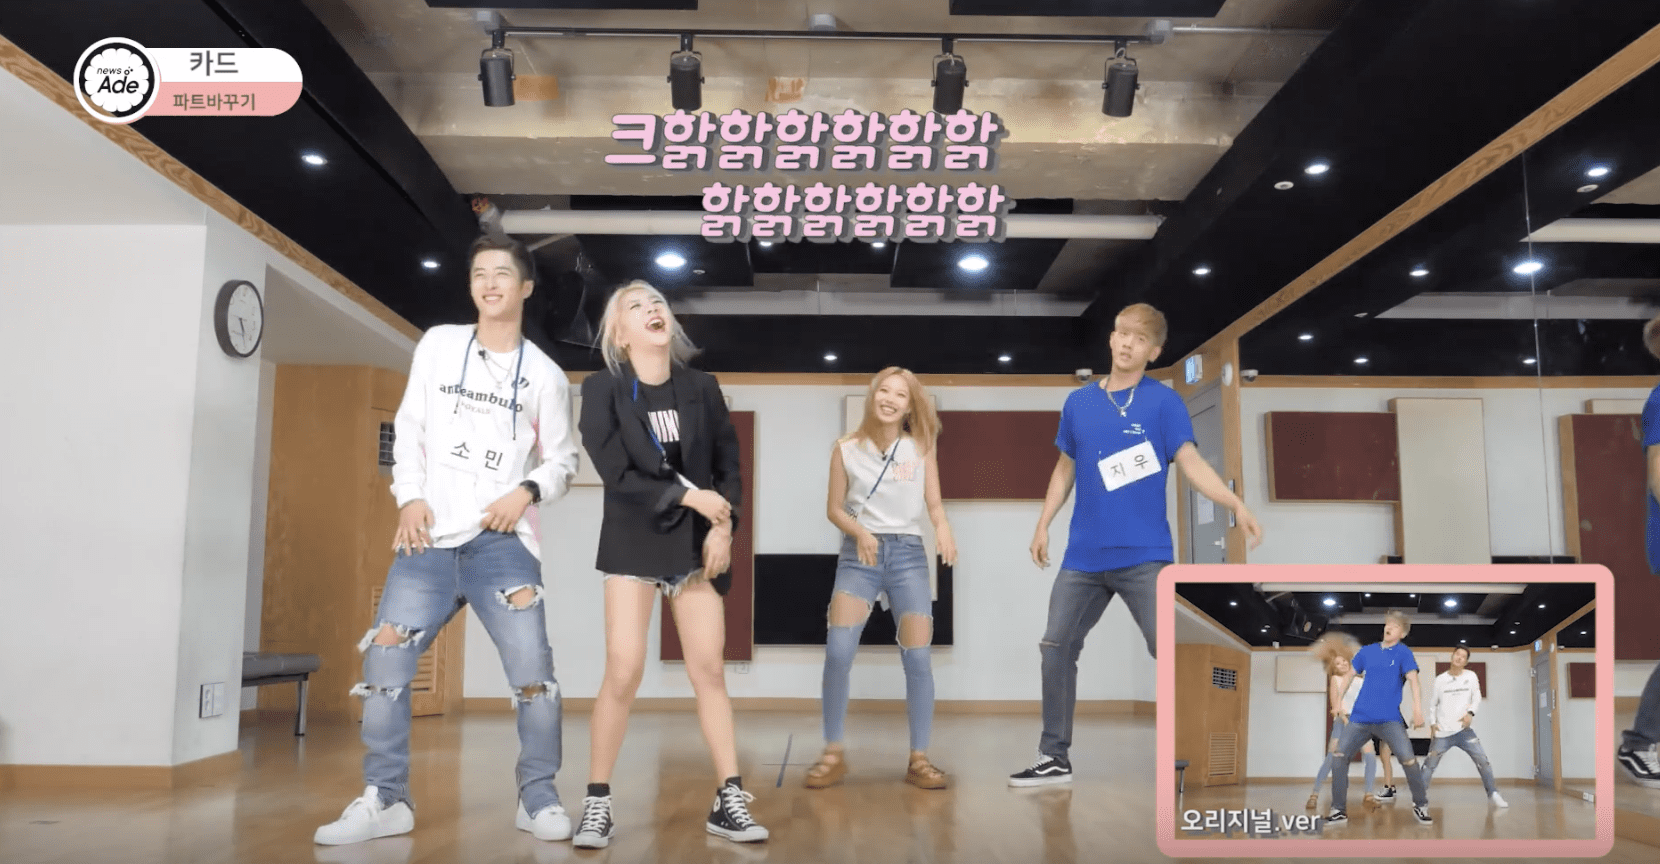 Watch: KARD Hilariously Fails In Switching Choreography Parts For Hola Hola